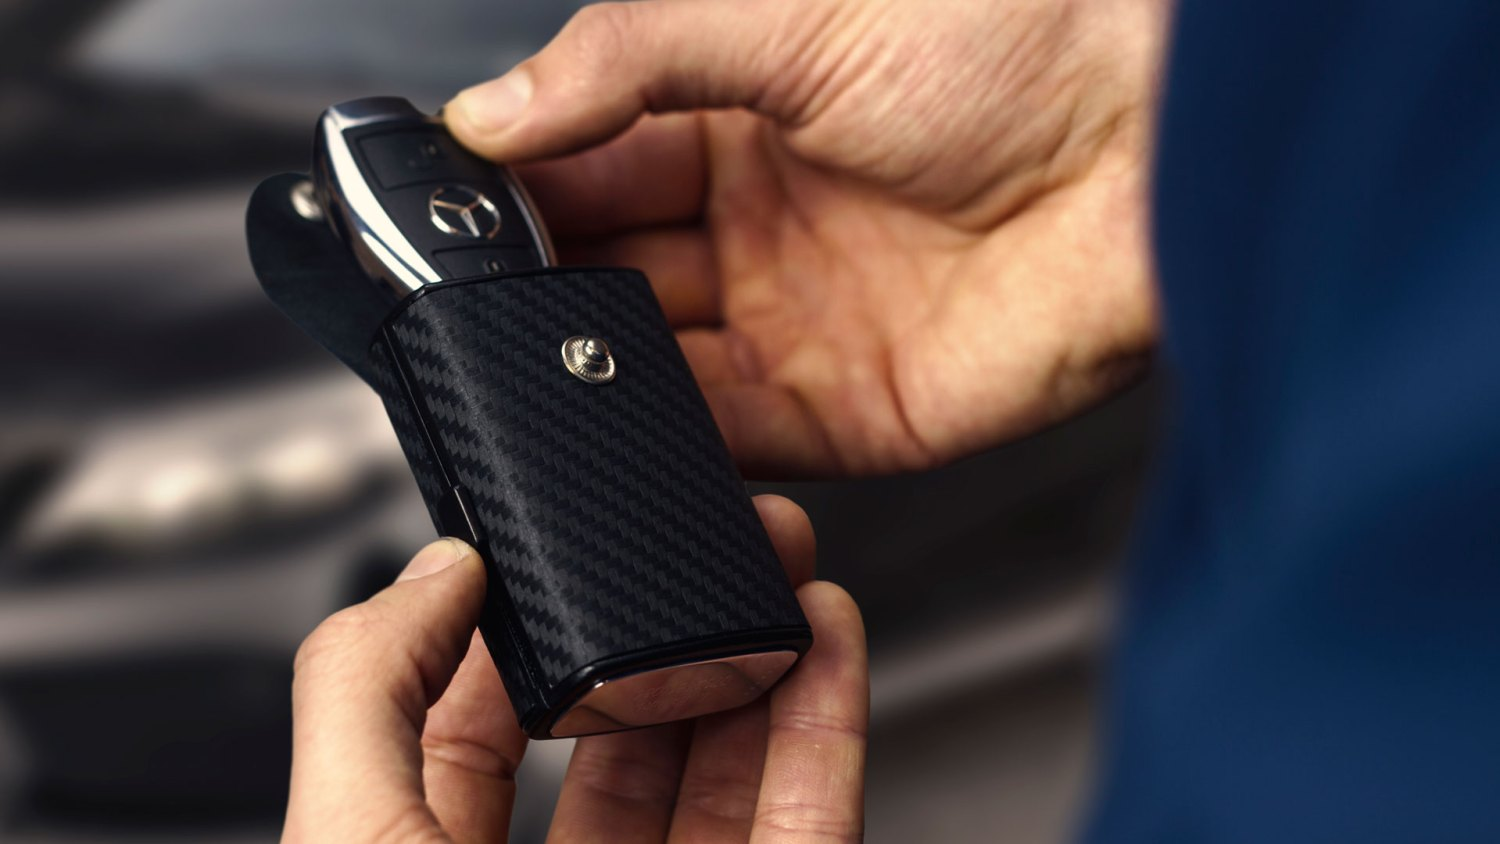 Is this the most stylish way to beat keyless car theft?